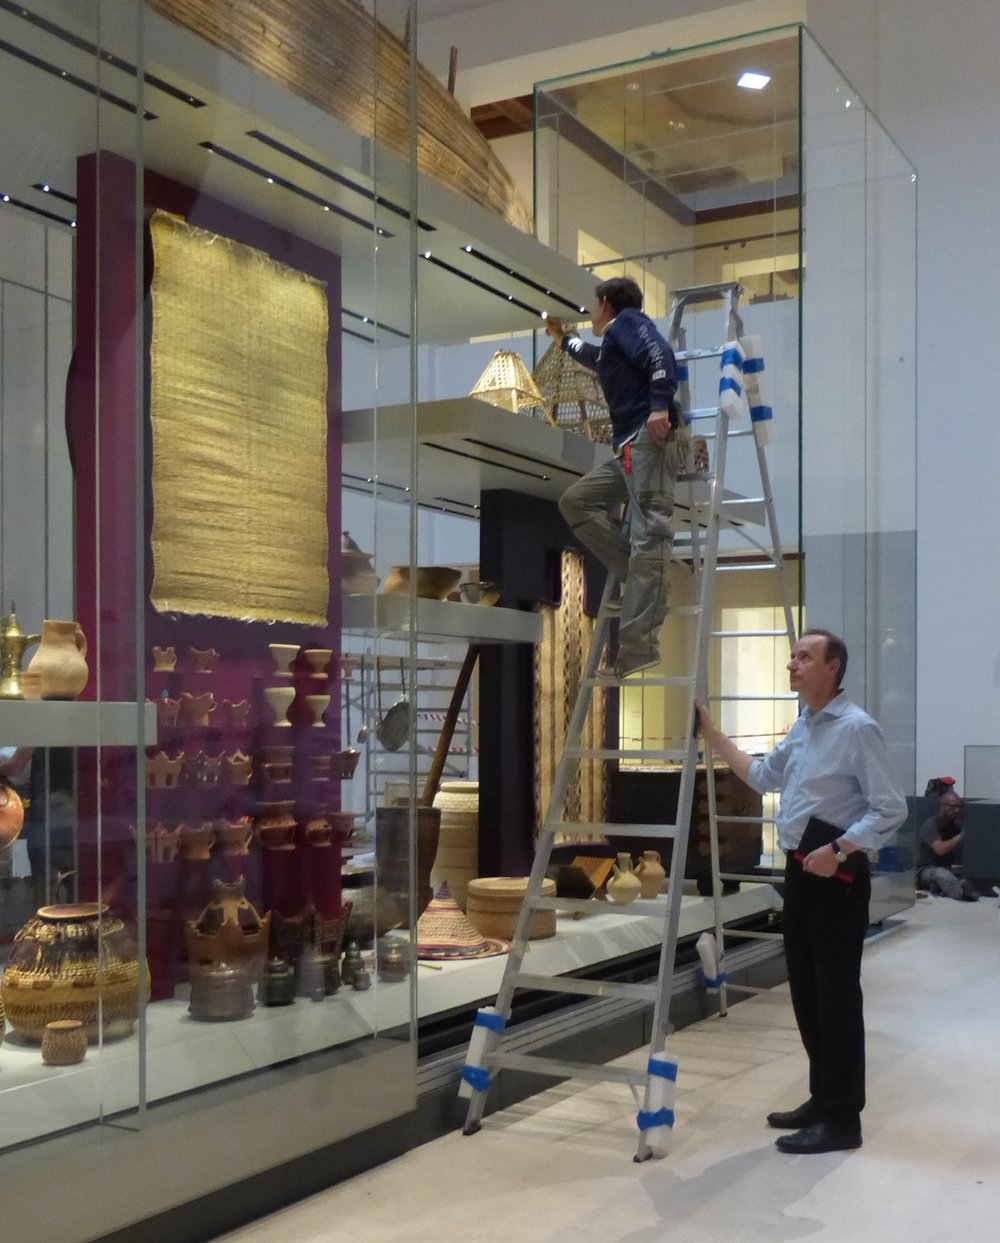 Mark Sutton Vane in the National Museum of Oman focusing the lights for one of the exhibits.